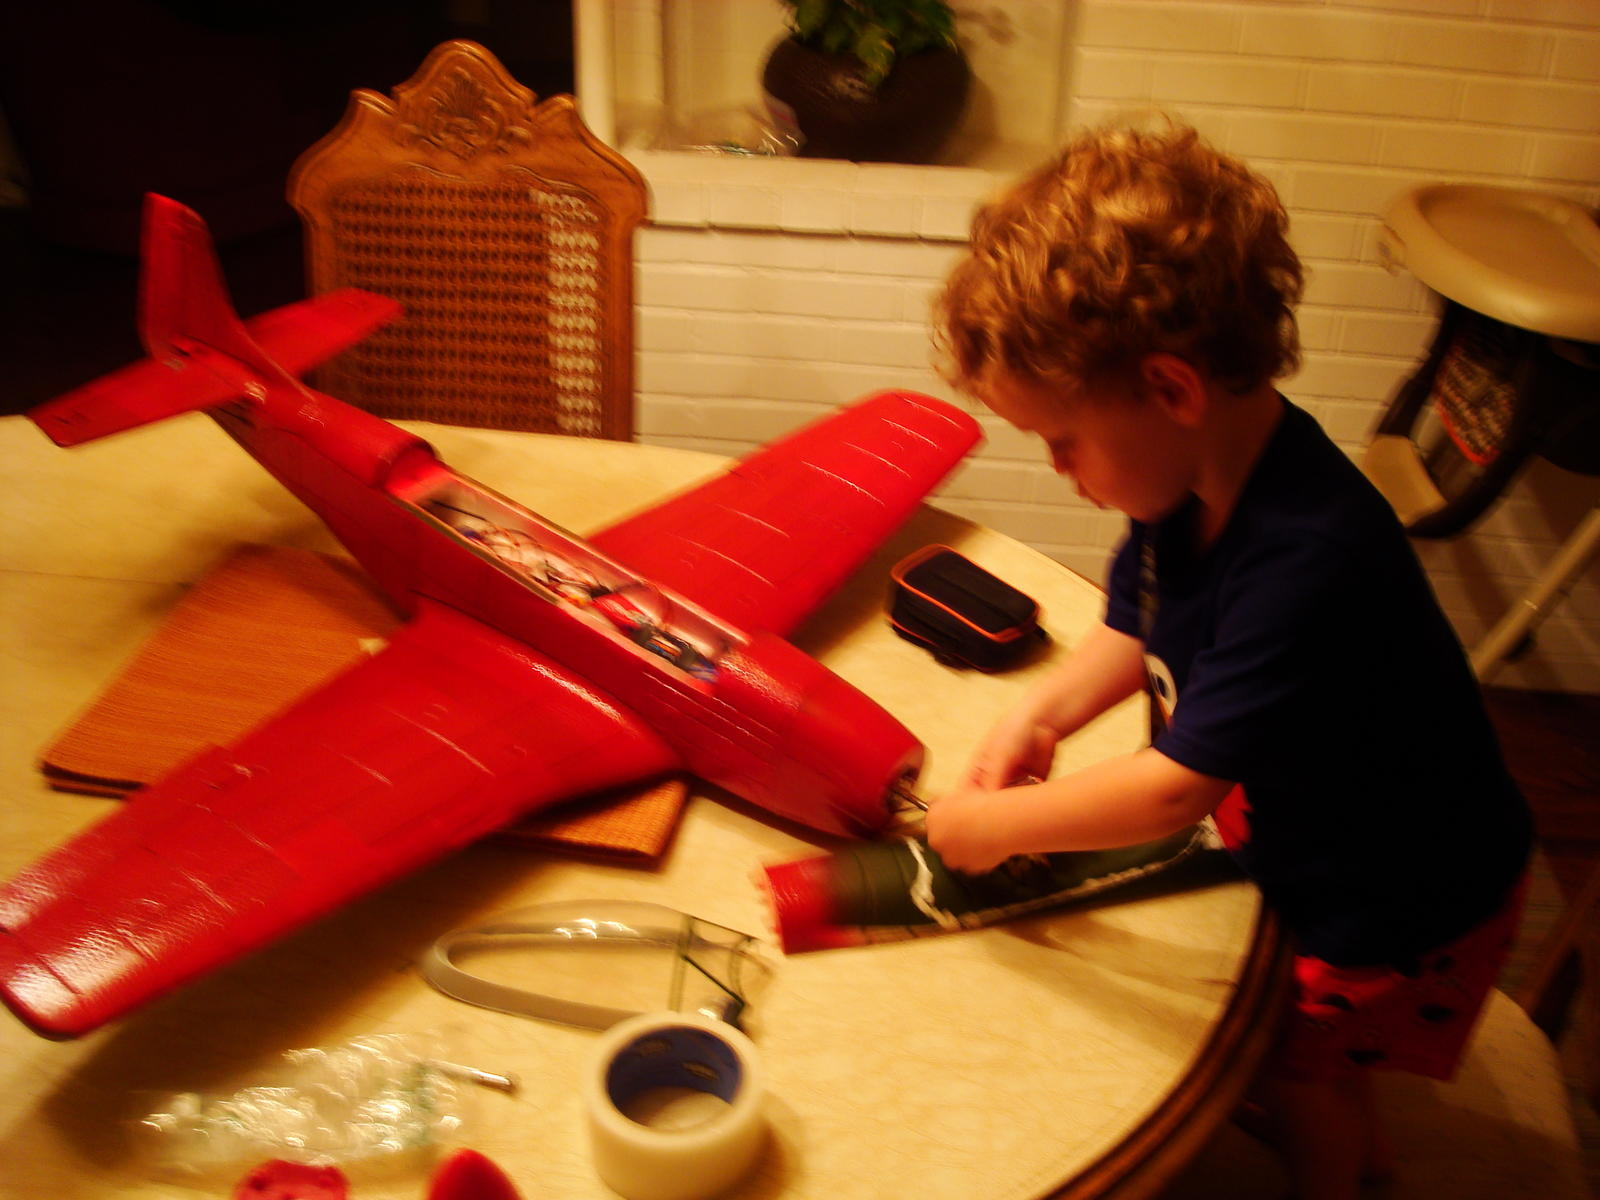 Rebuilding a new, very red, Reno Racer with my main man.